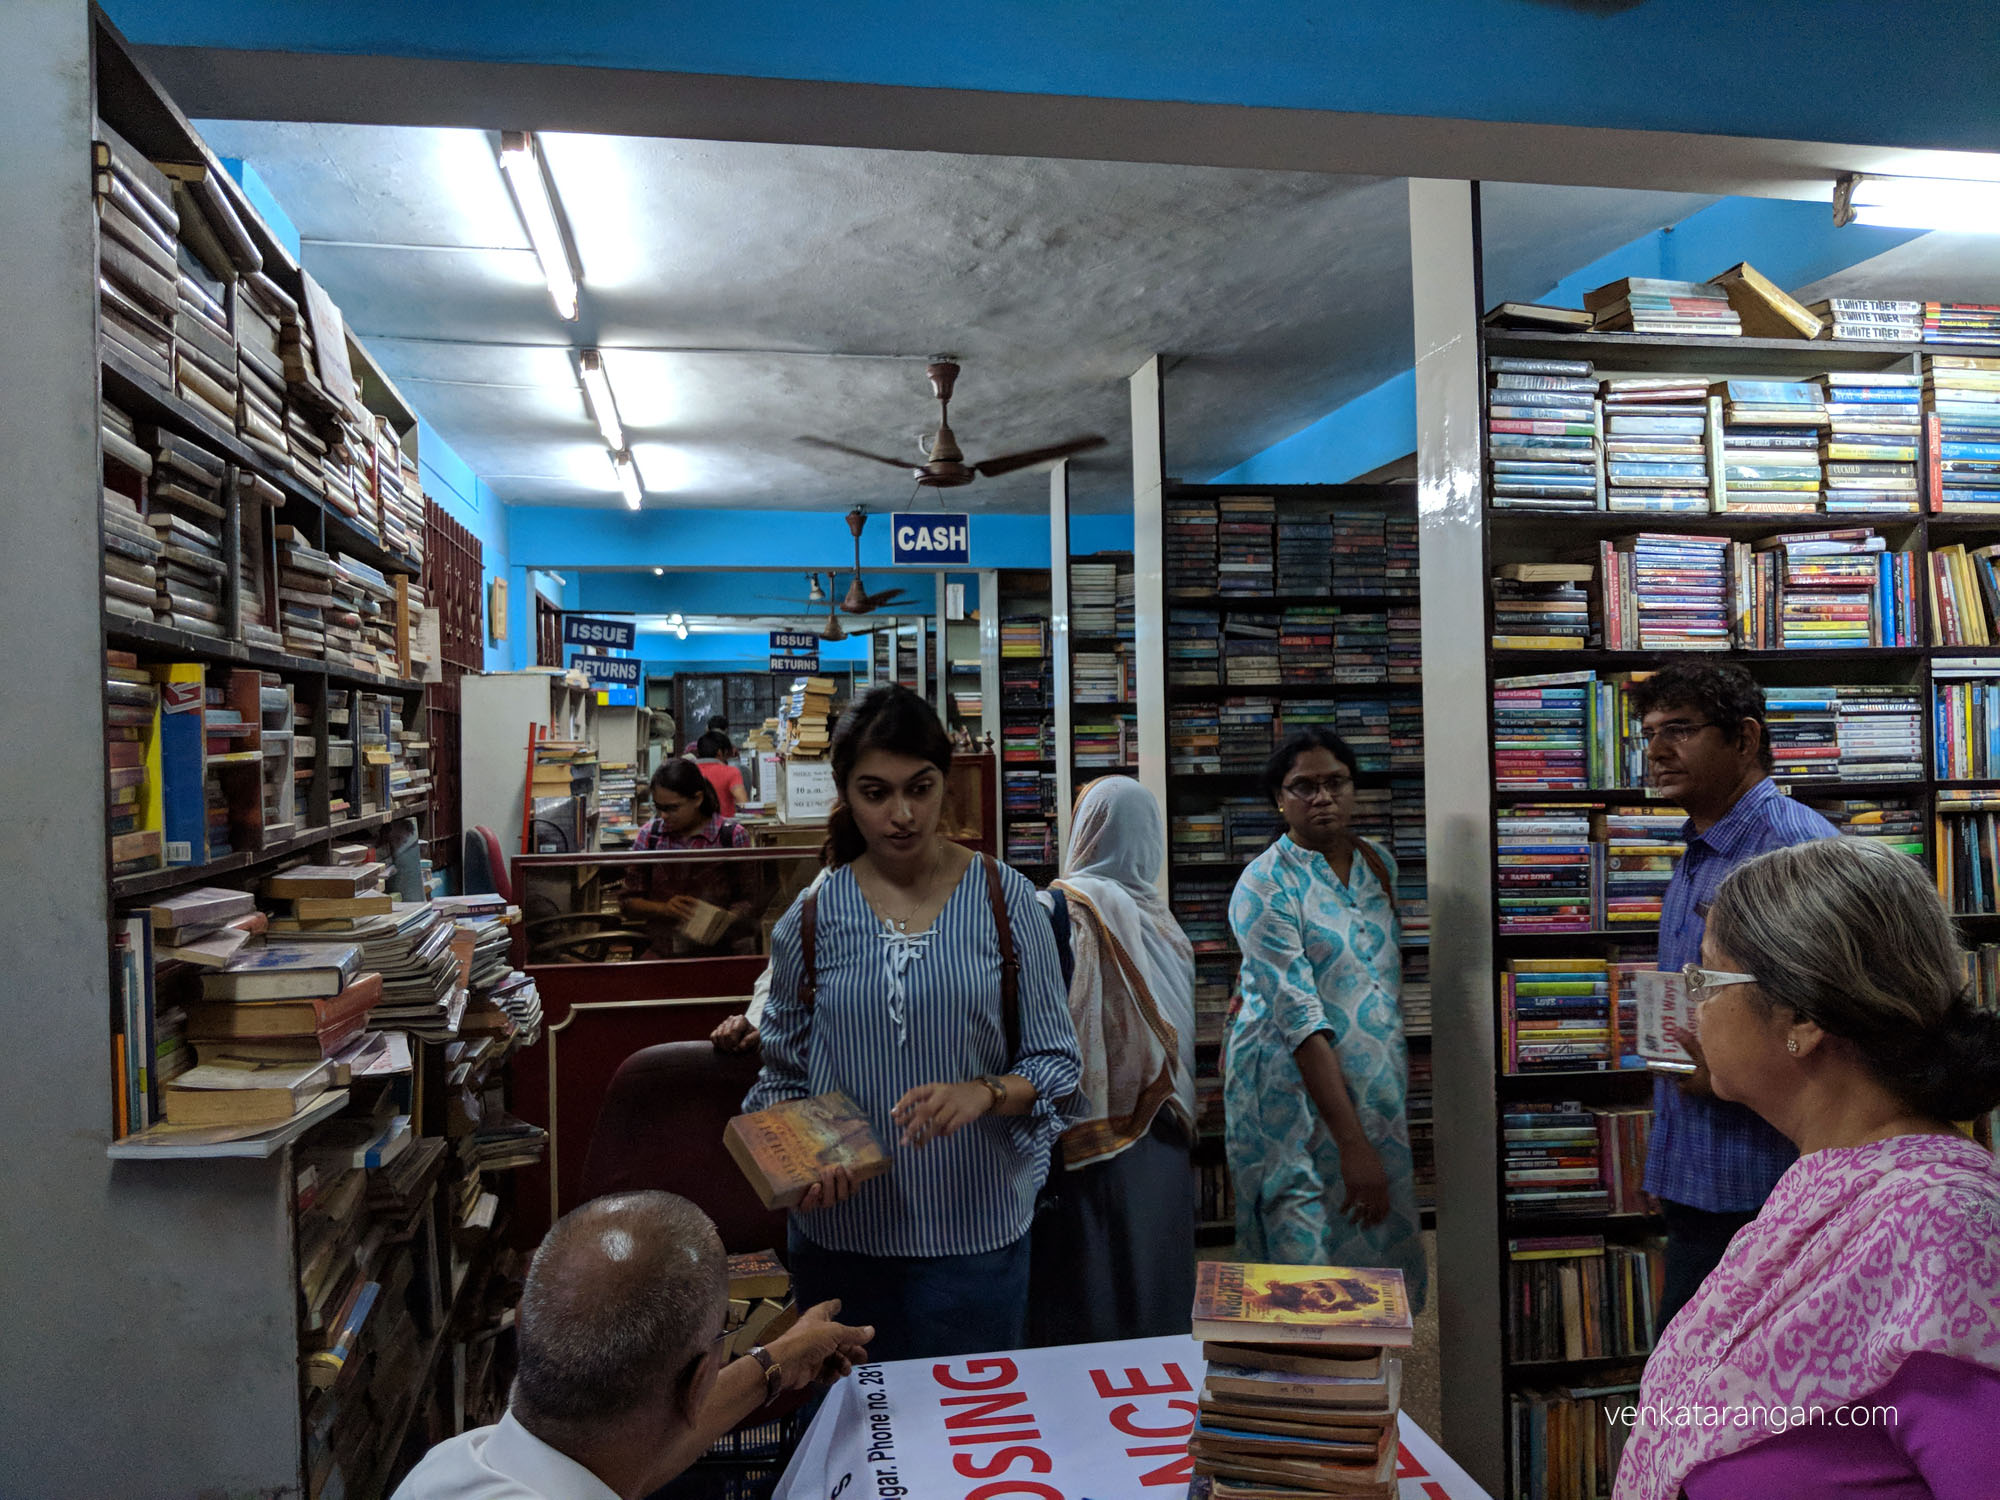 Ailes of books in Eloor Lending Library, Chennai